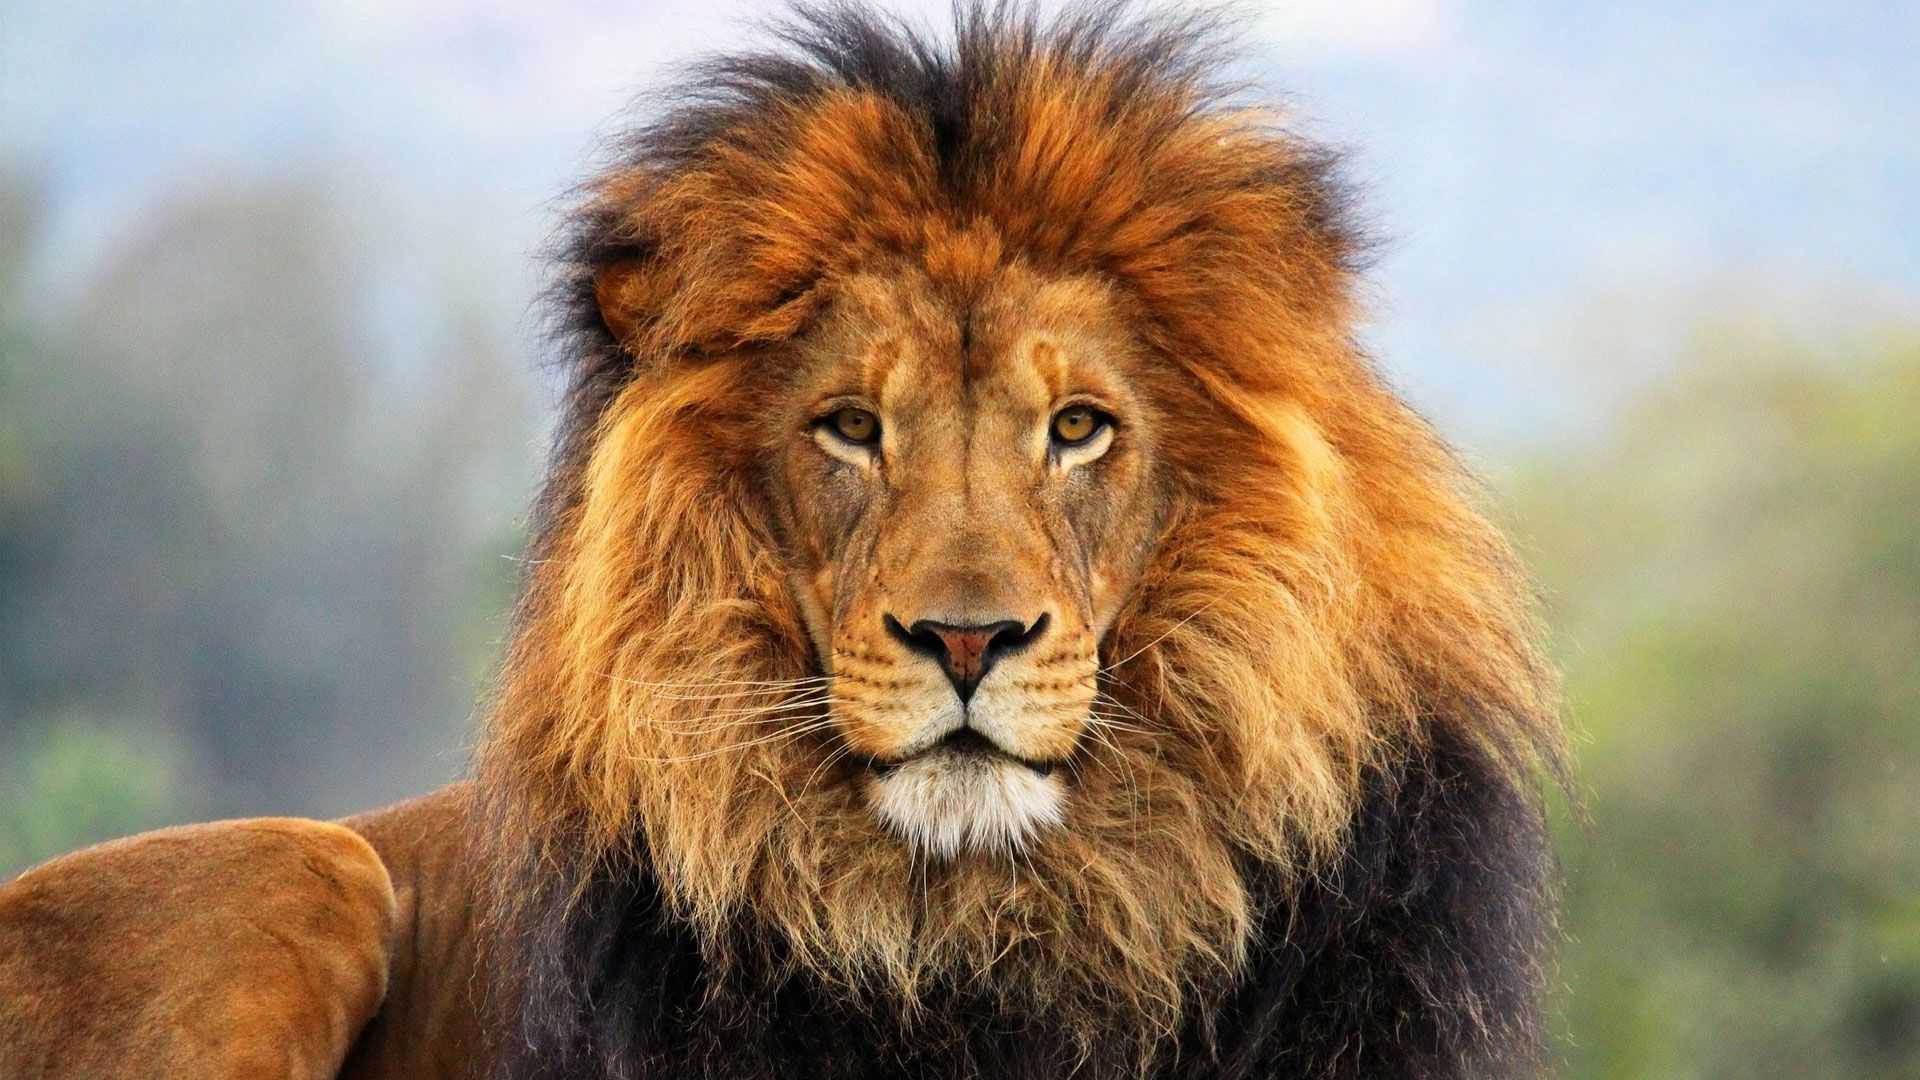 lion wallpaper hd 1080p Lion pictures, Lion wallpaper